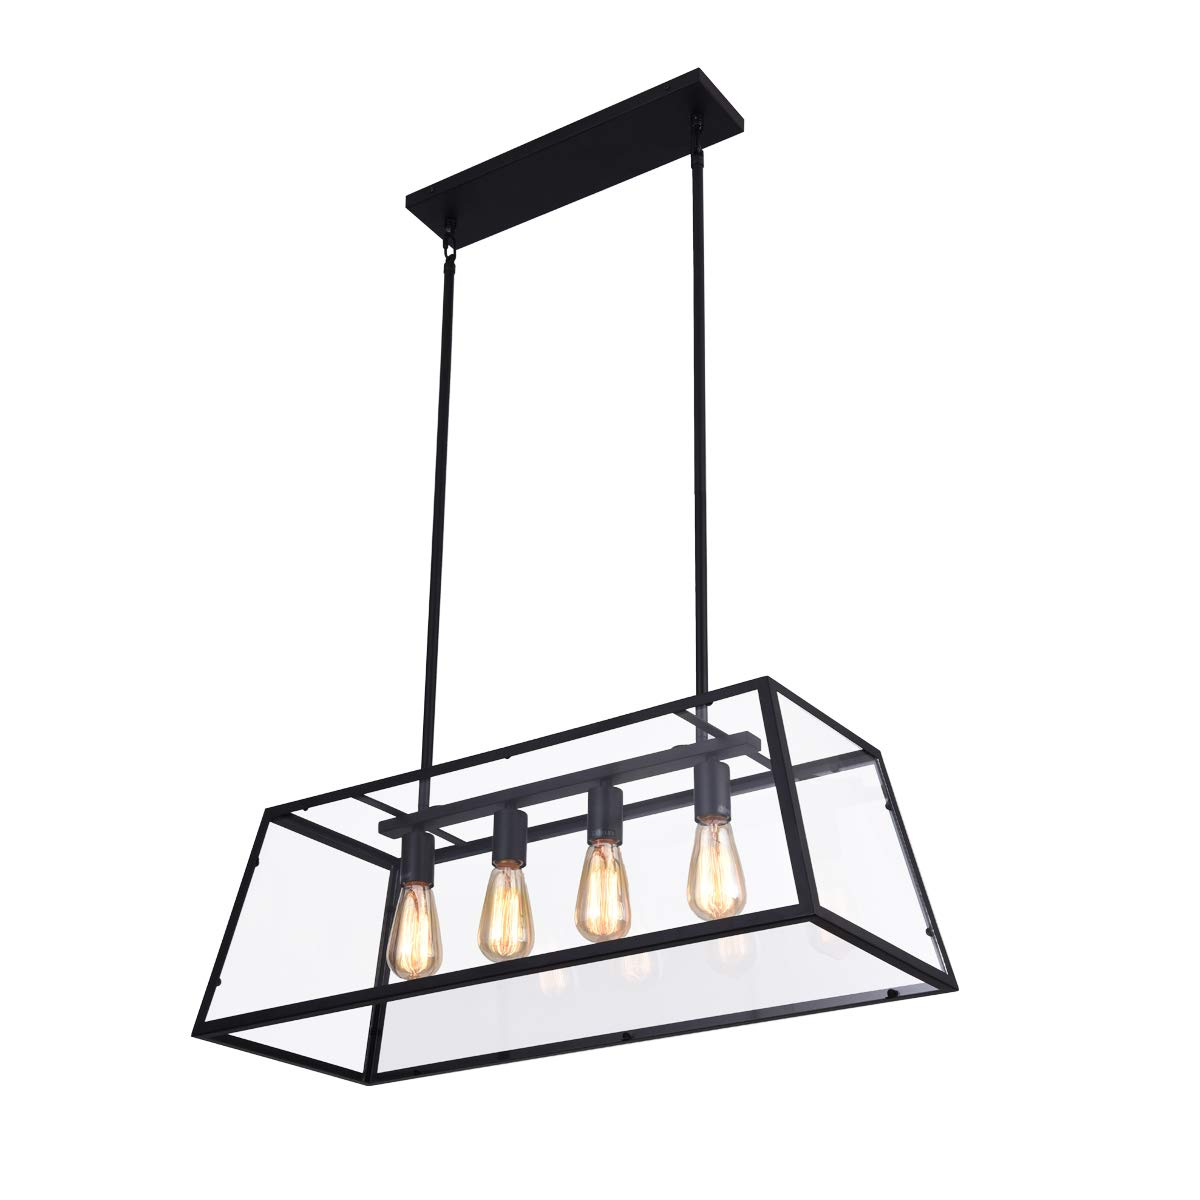 mirrea 4-Light Kitchen Island Pendant Matte Black Shade with Clear Glass Panels Modern Industrial Chandelier for Dinning Room by mirrea (Image #1)